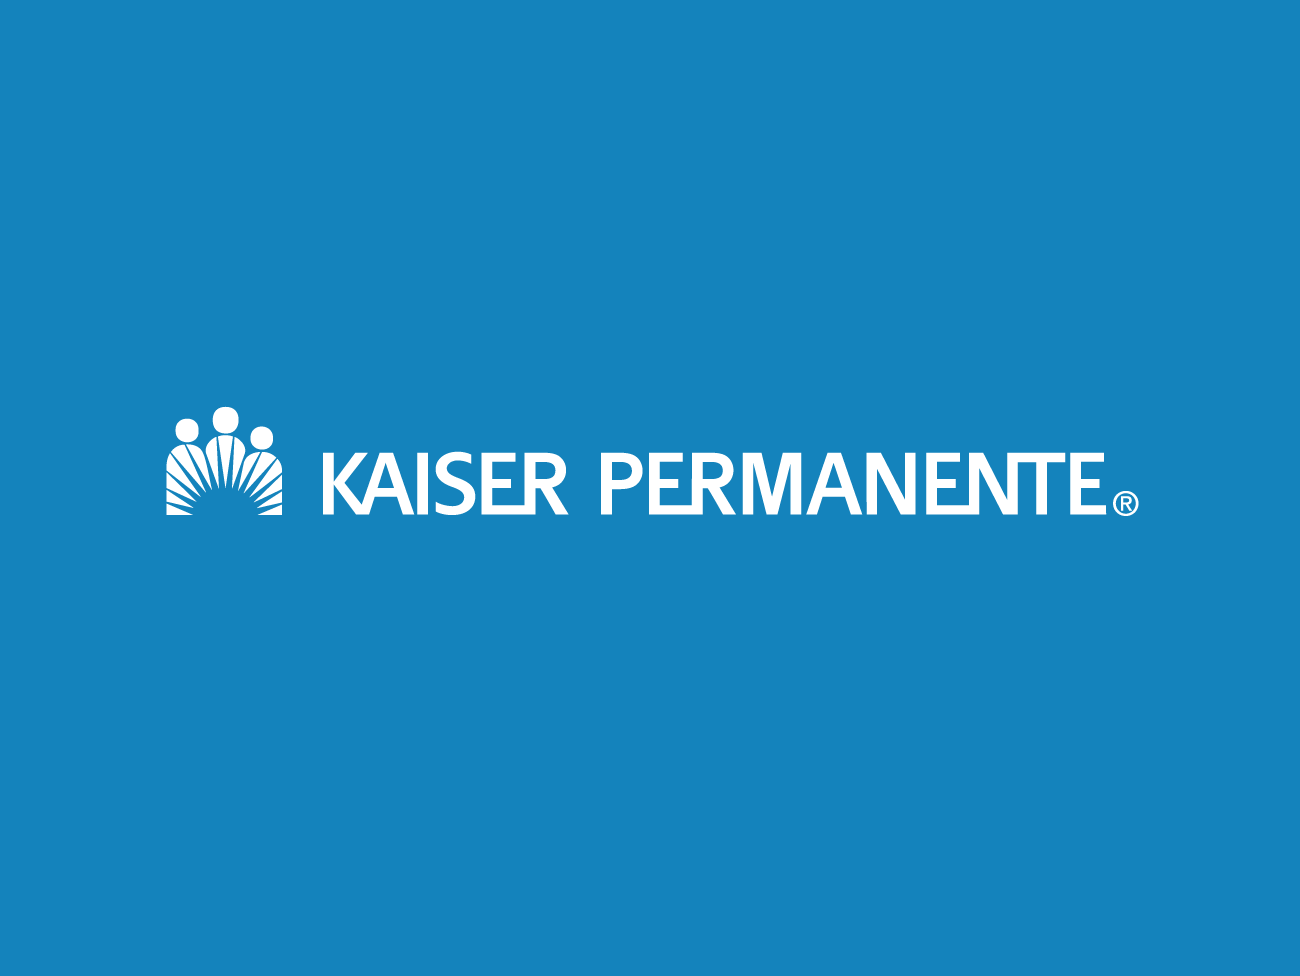 Kaiser Permanente logo with blue background